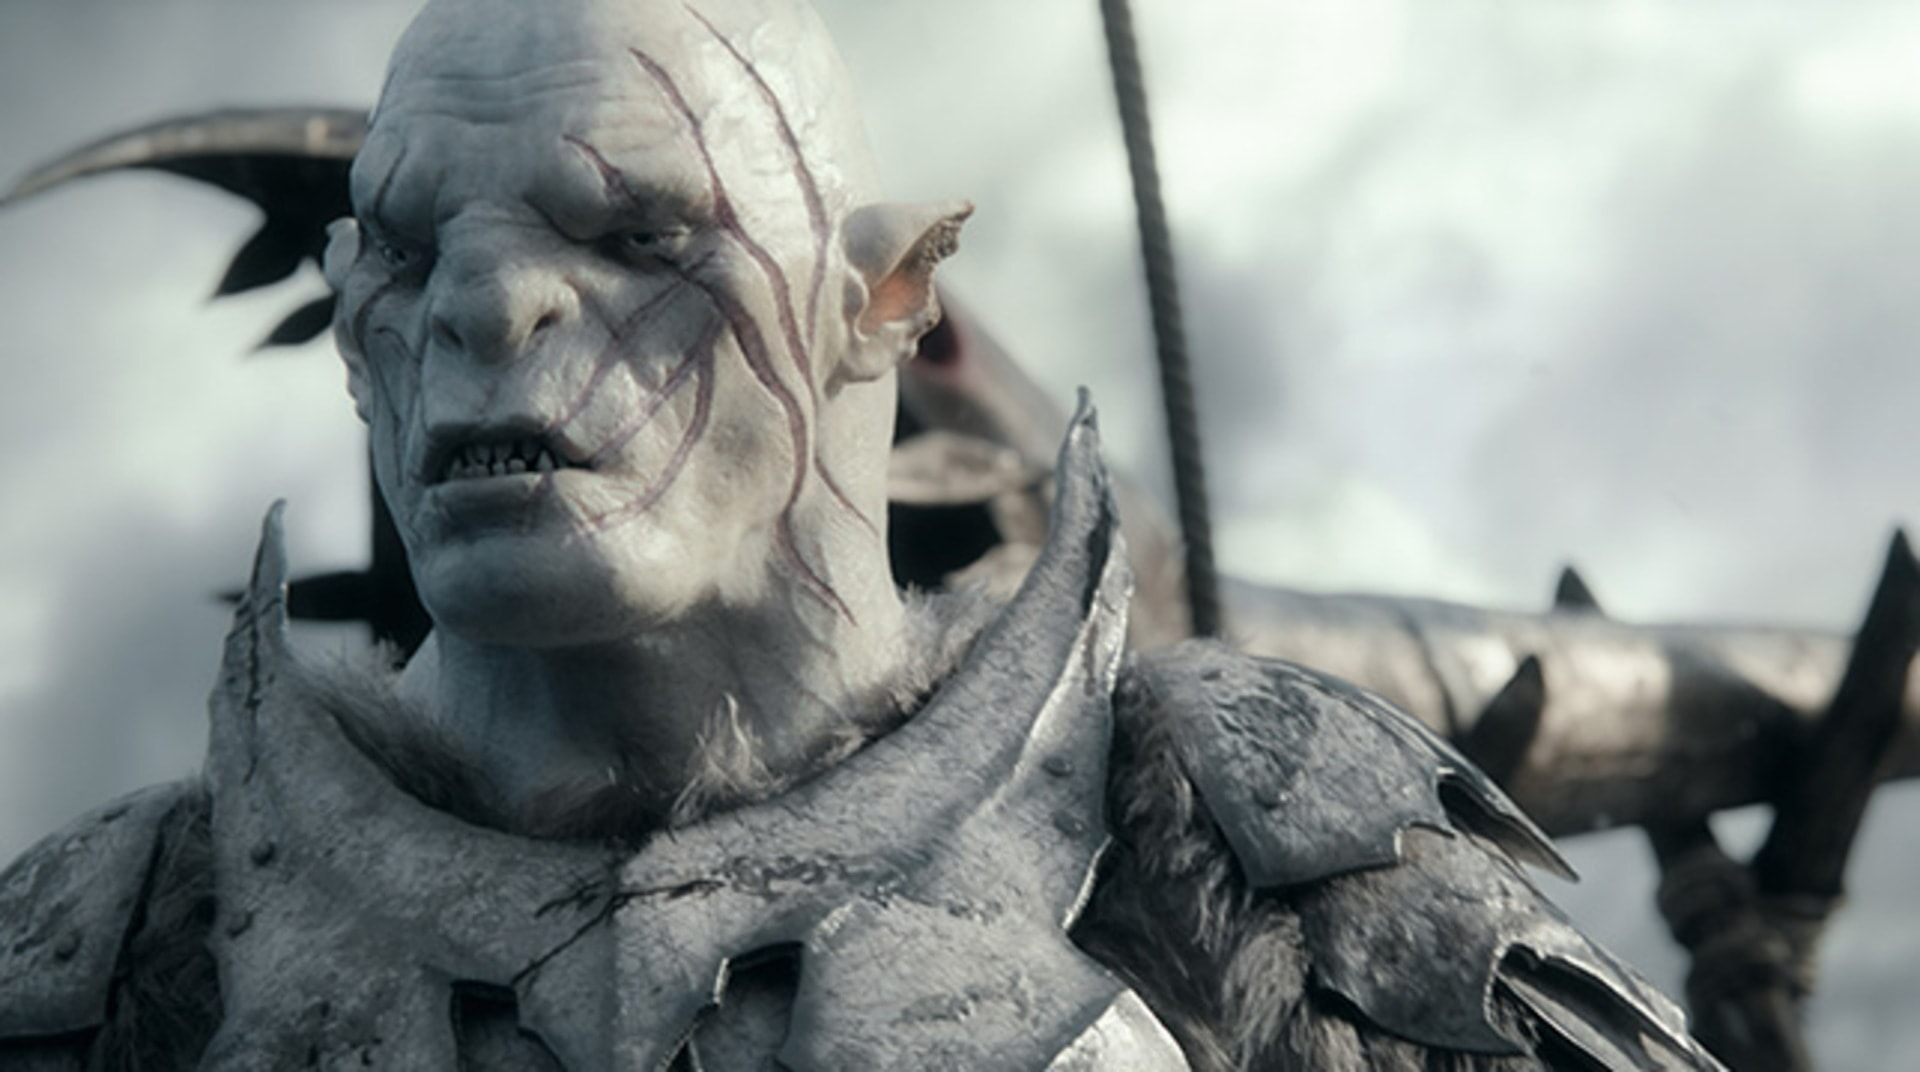 The Hobbit: The Battle of the Five Armies - Image 28